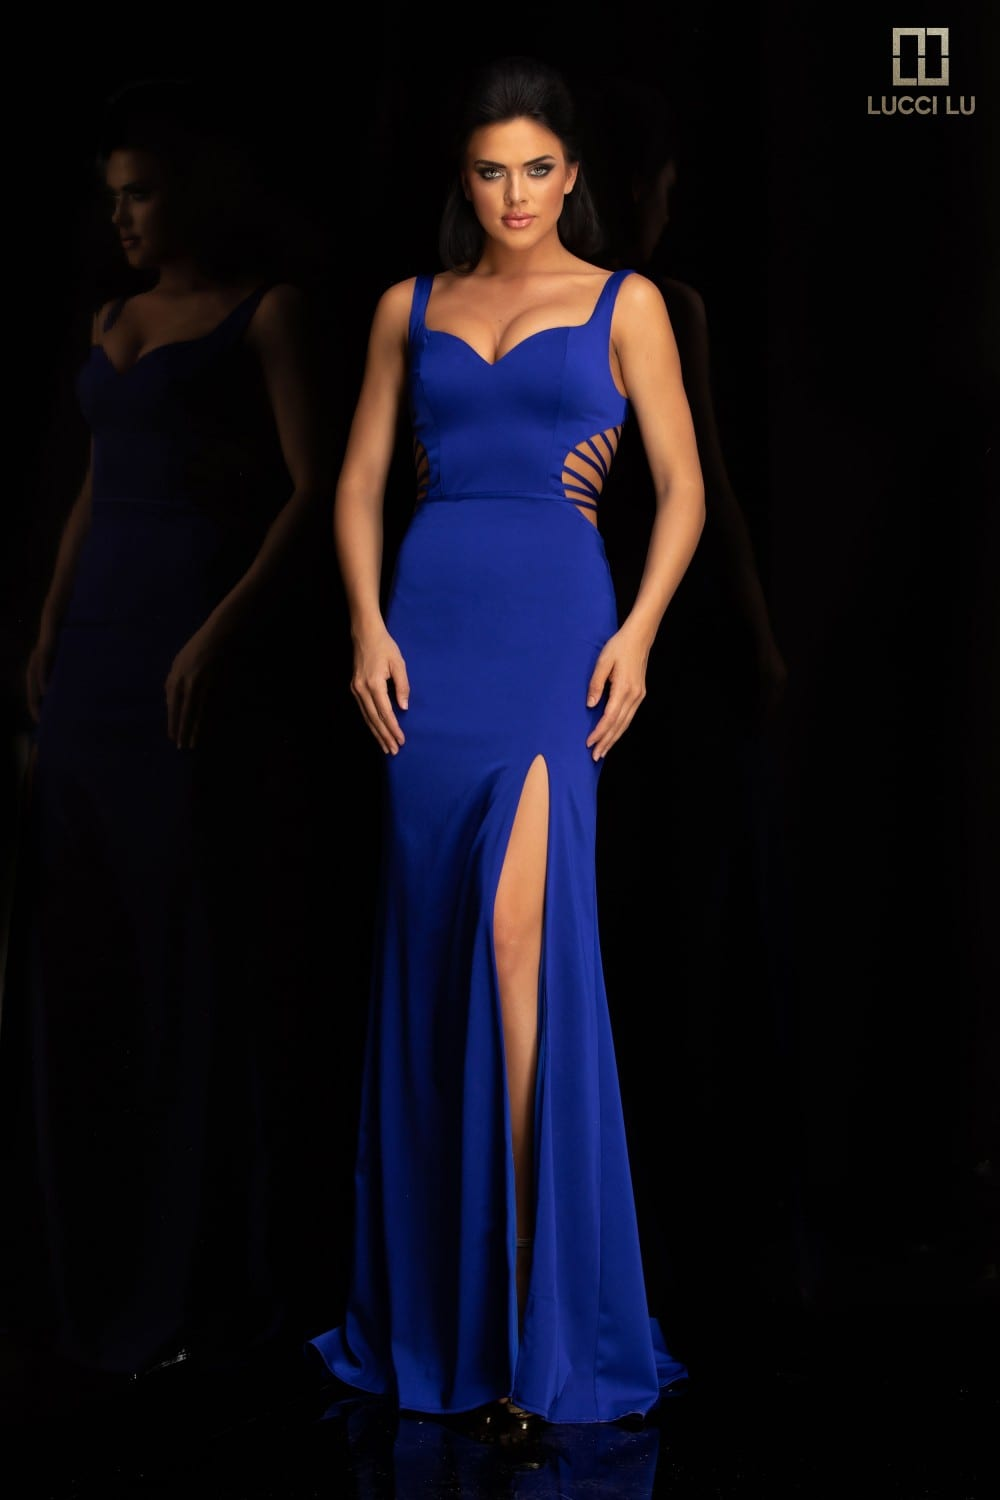 Fitted gown featuring a sweetheart bodice and ladder cut sides with a slit.